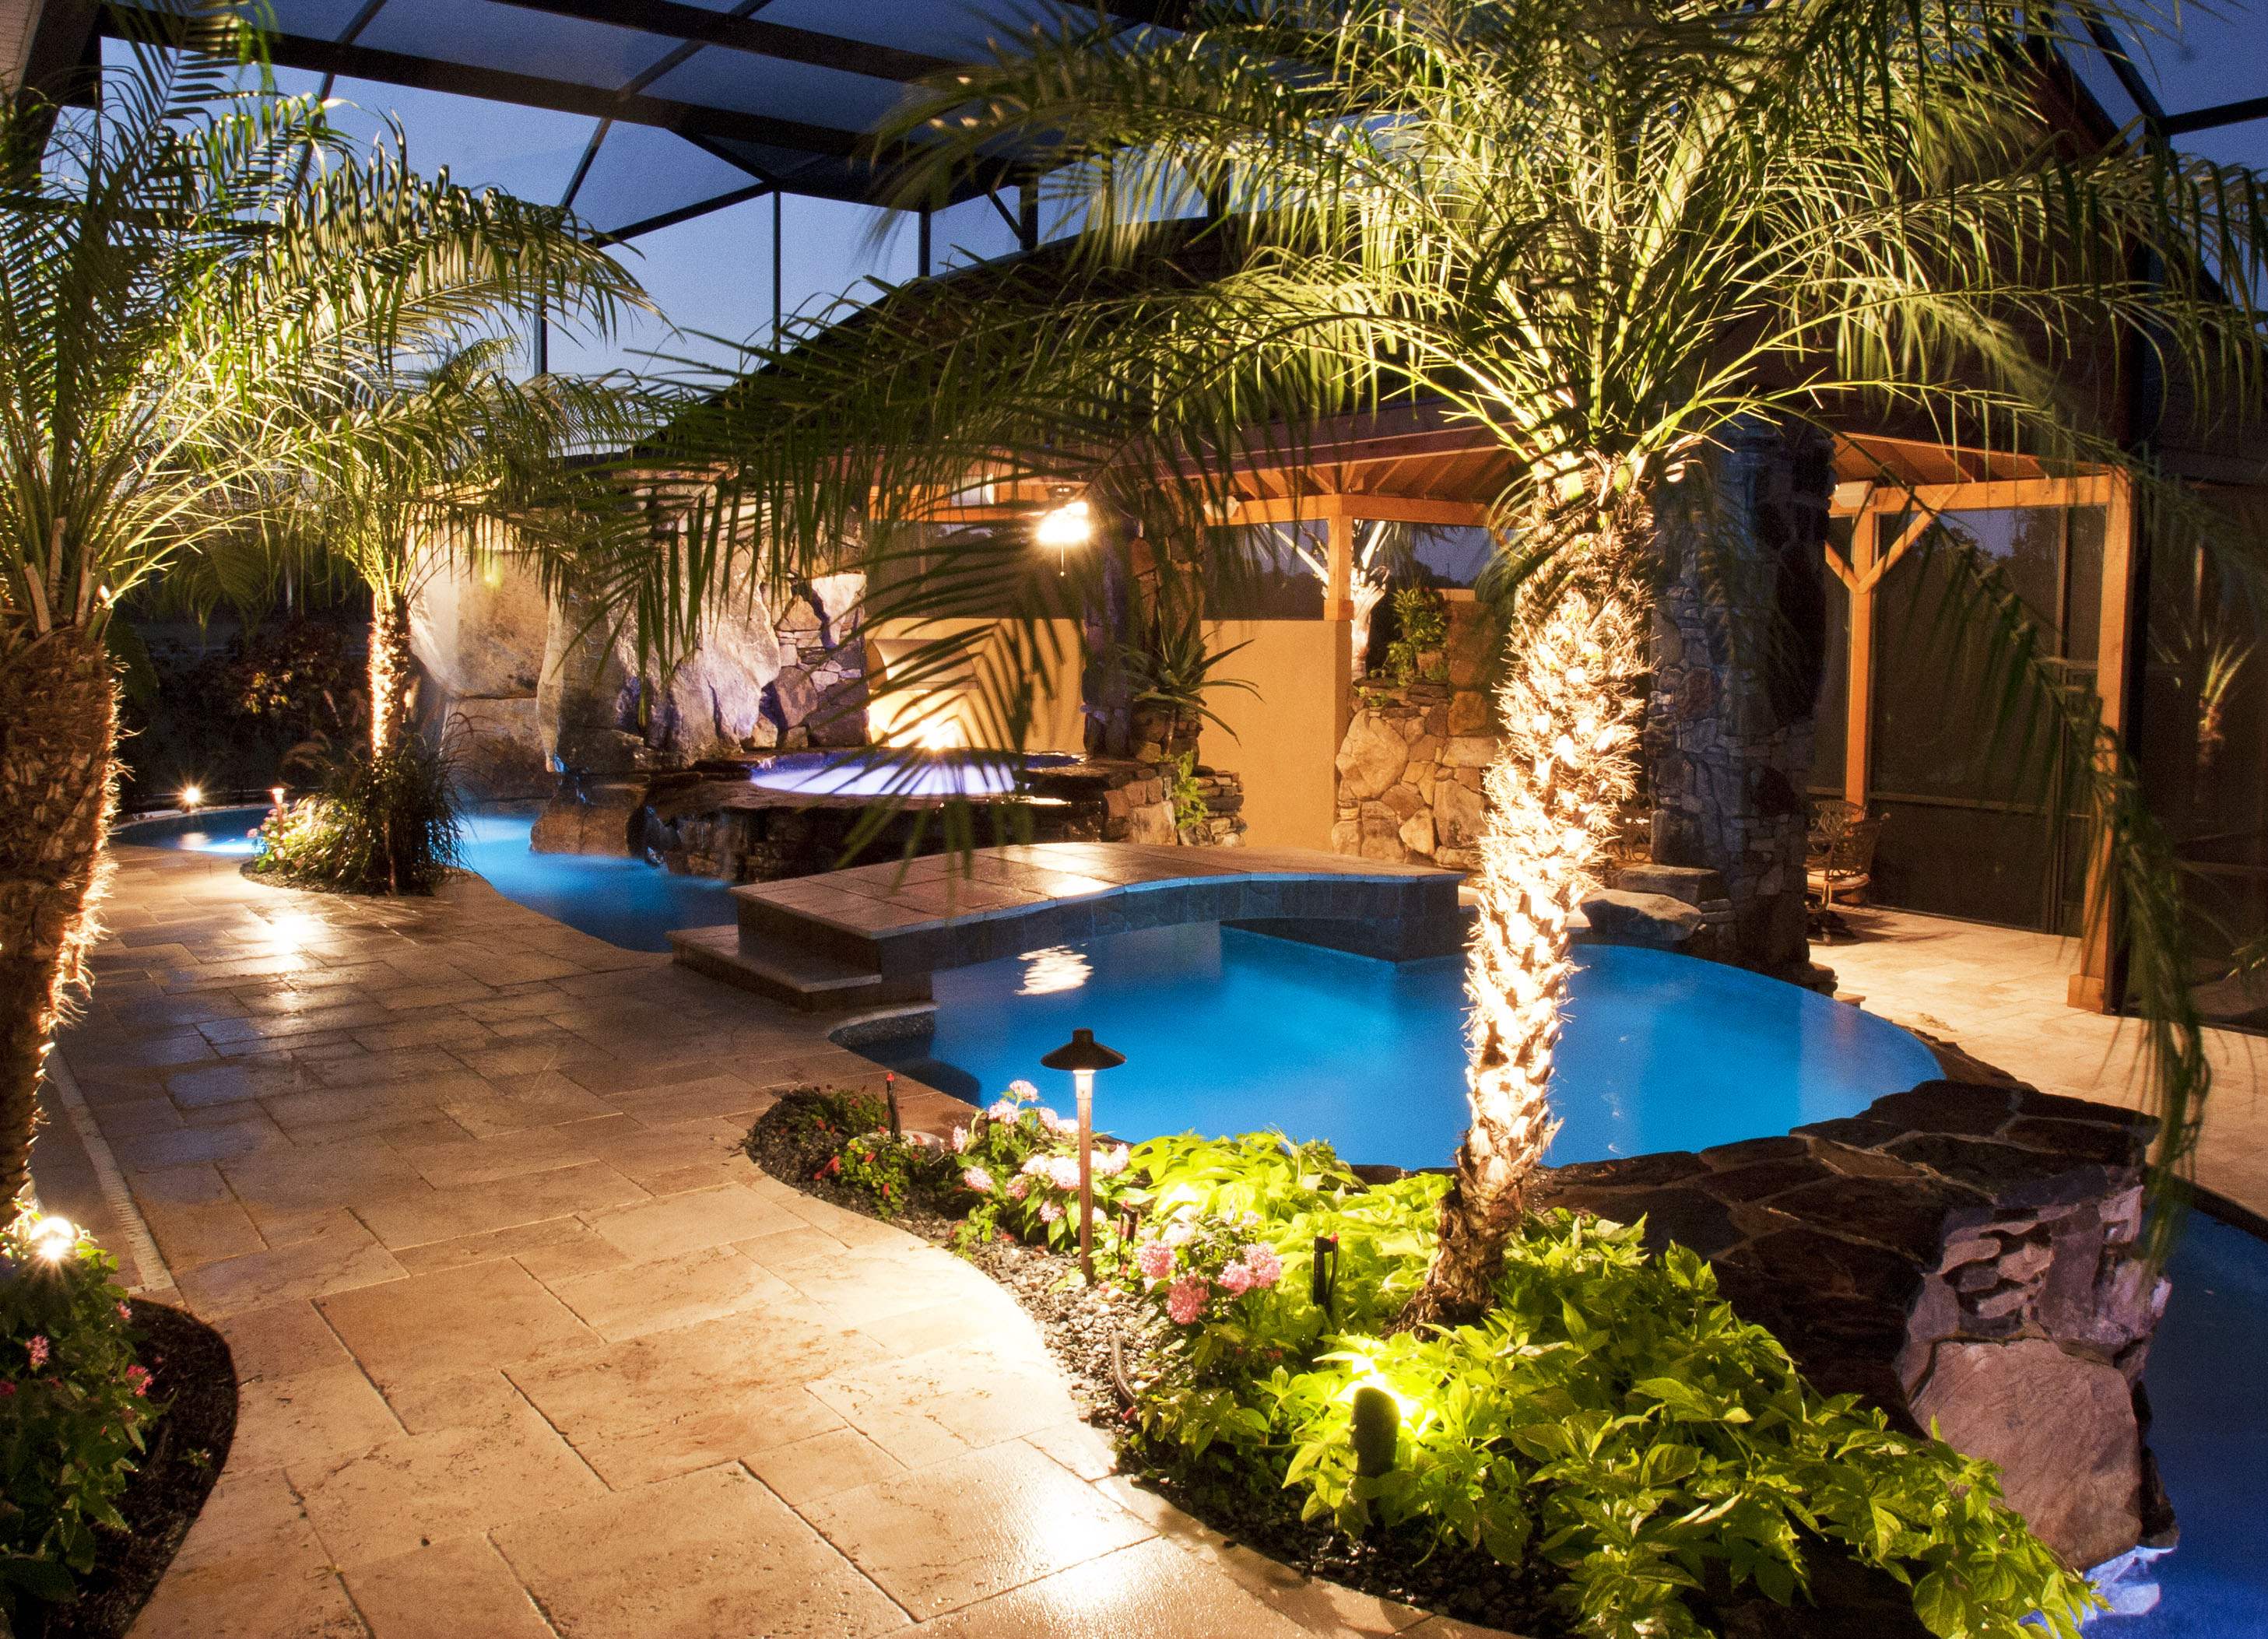 Merveilleux Swimming Pool And Spa With Outdoor Kitchen, Bar And Waterfalls